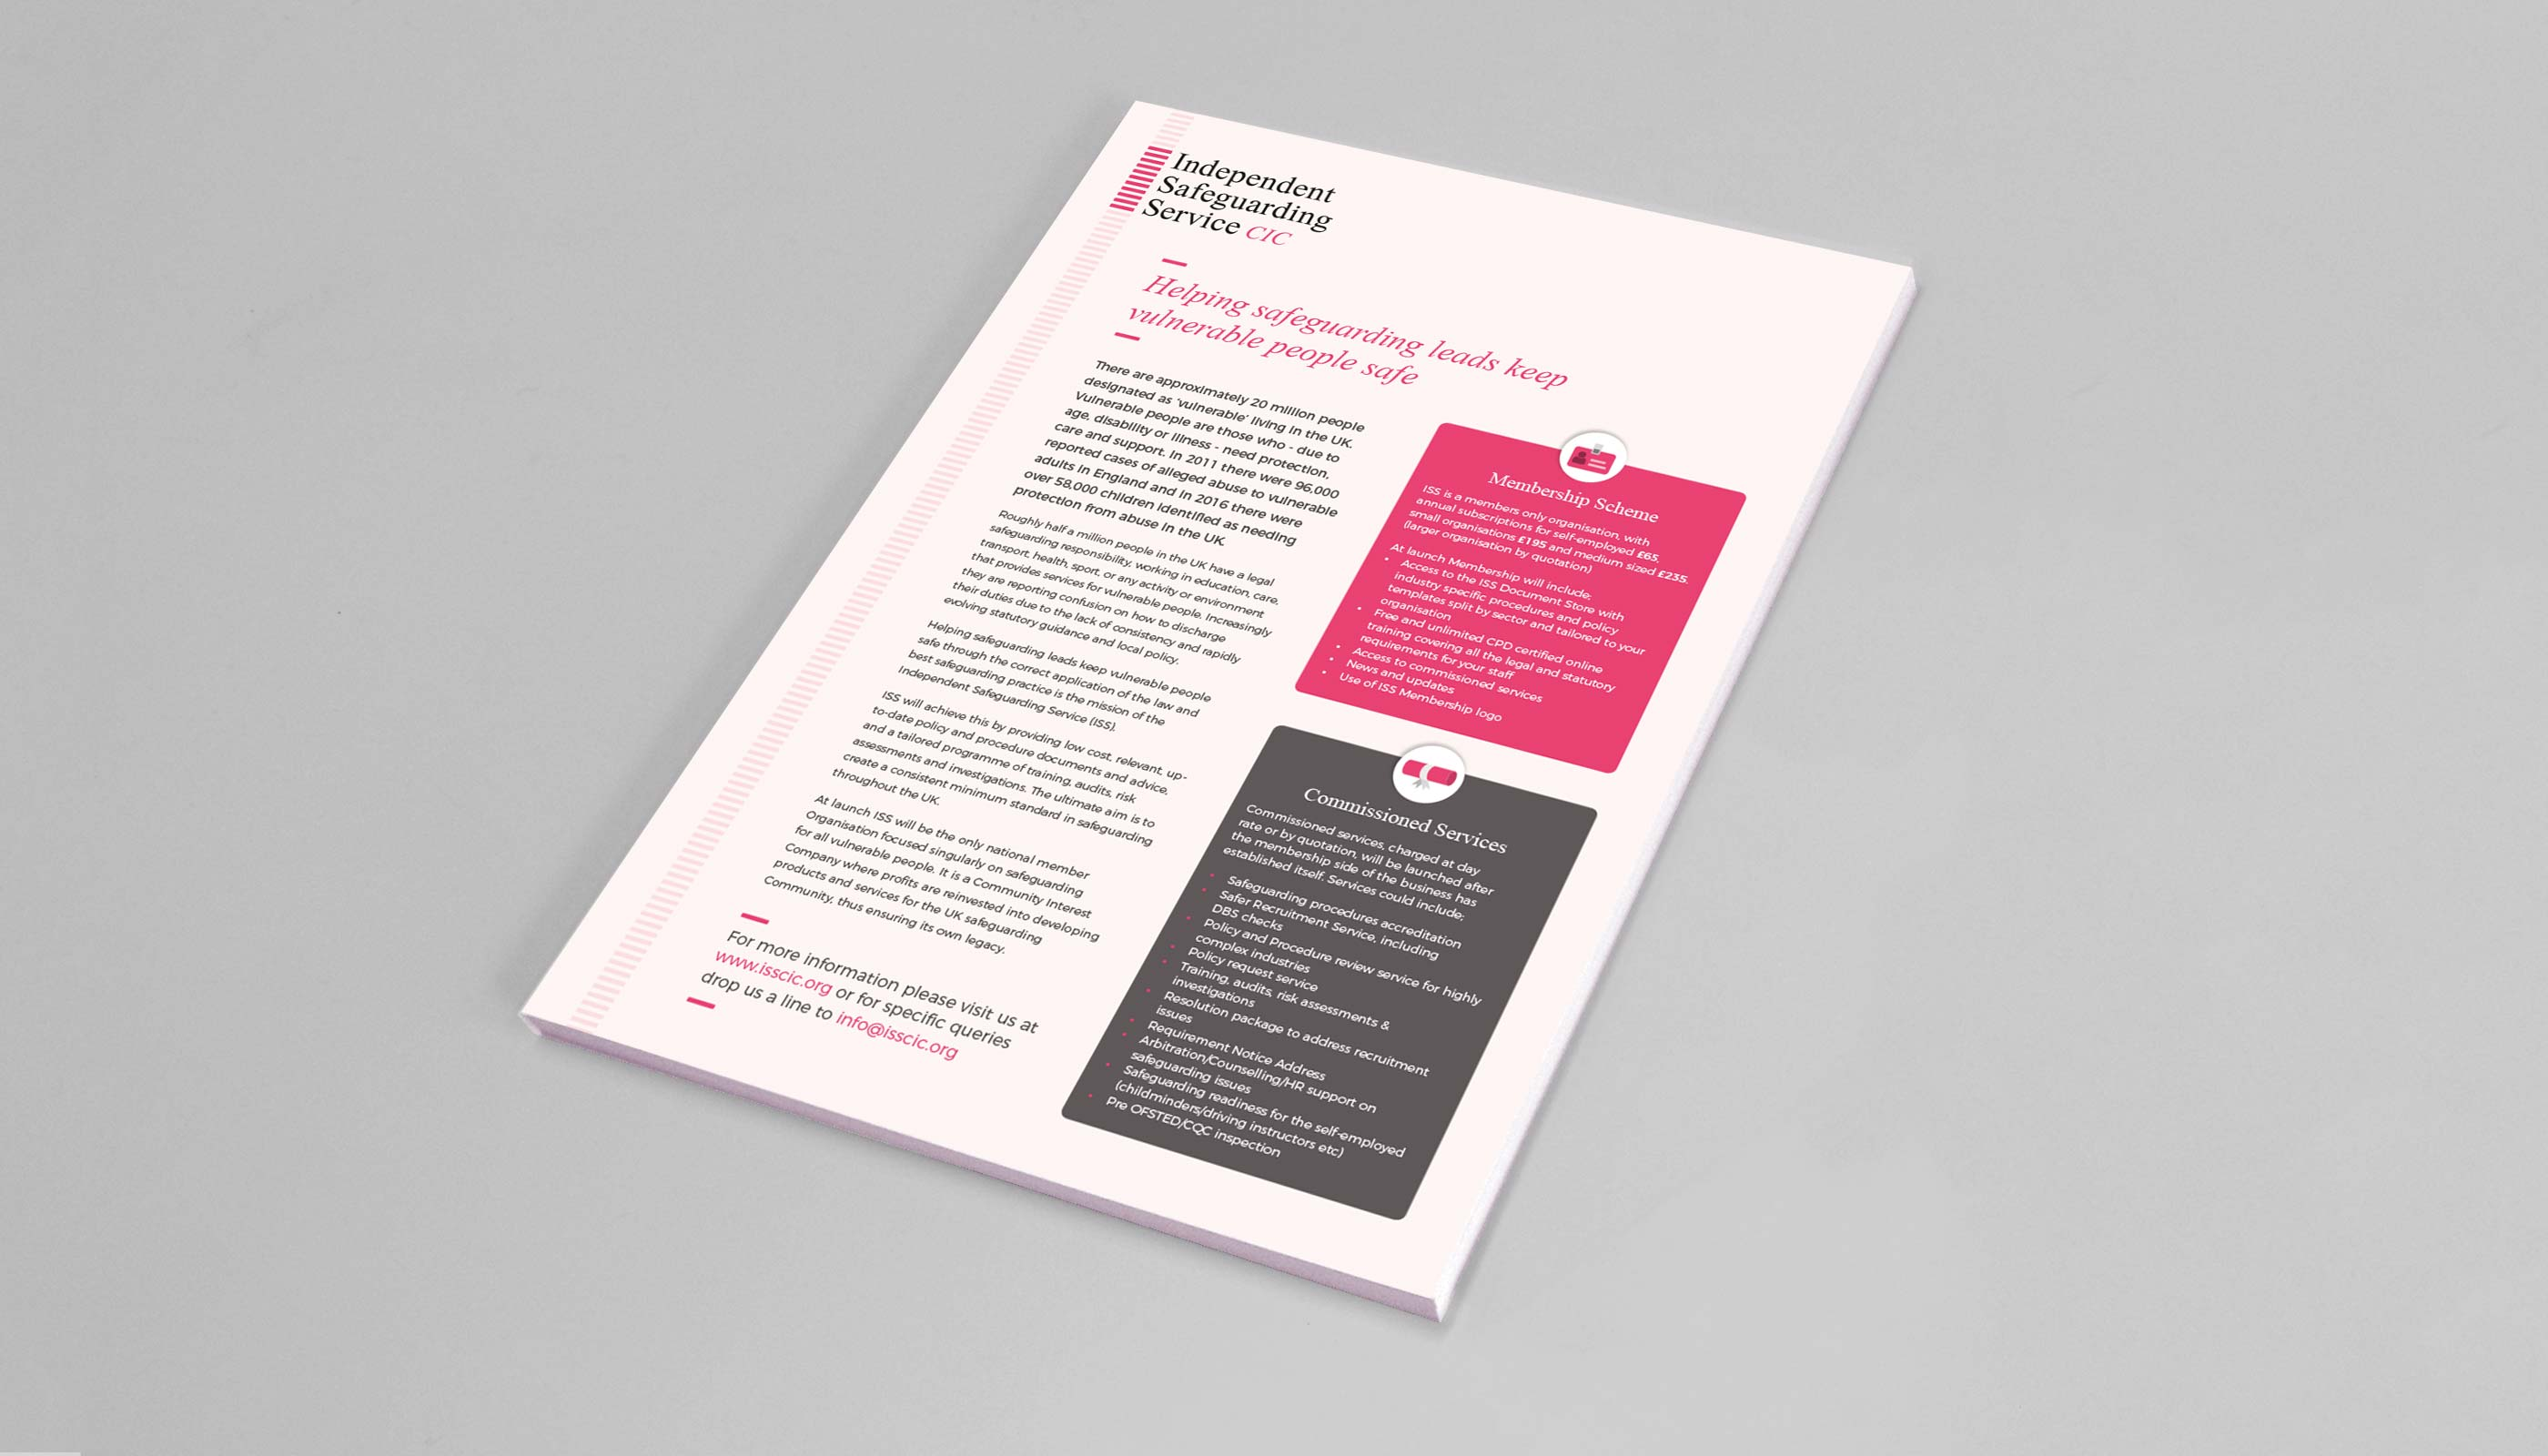 A4 information flyer design for Independent Safeguarding Service CIC, in London.